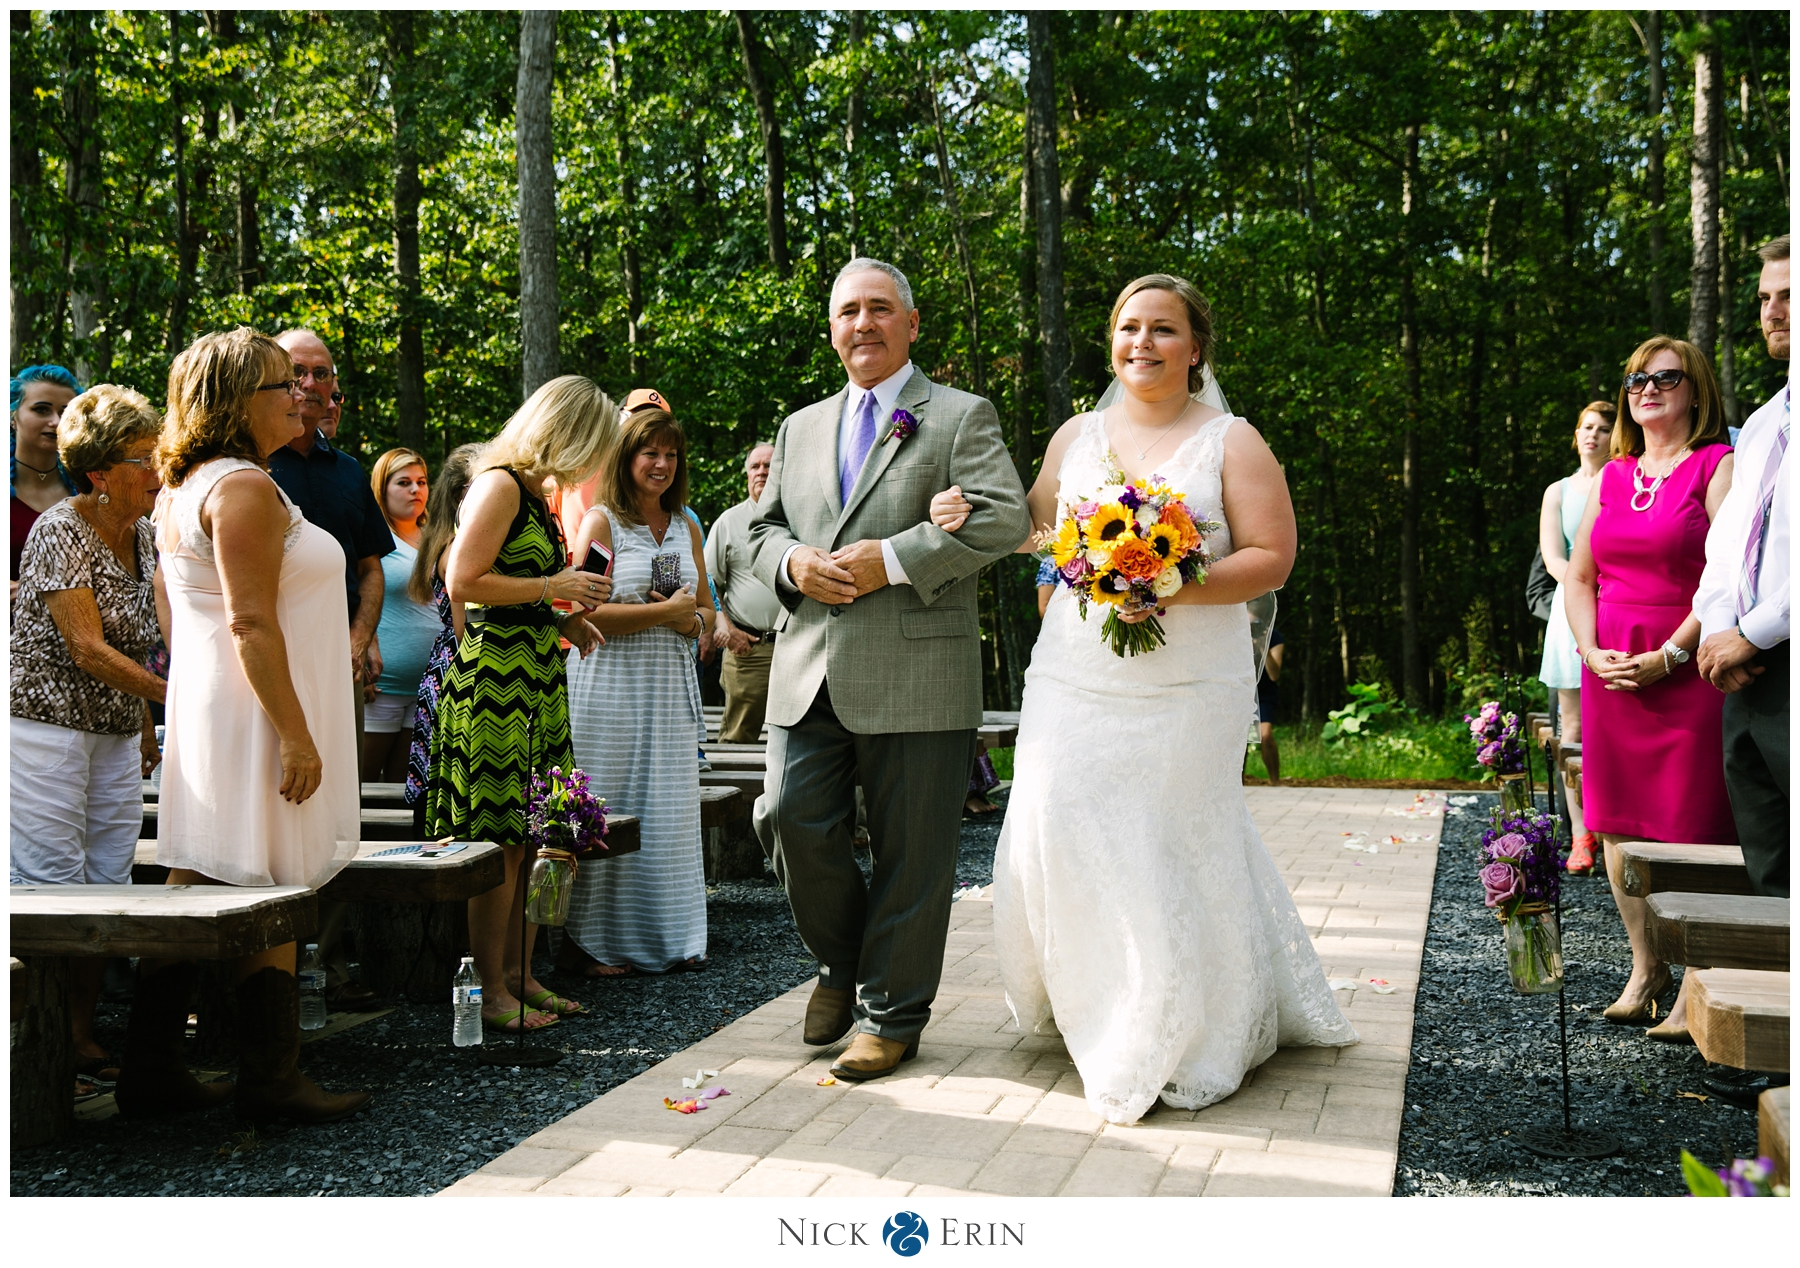 donner_photography_megan-corey-luray-virginia-wedding_0021a